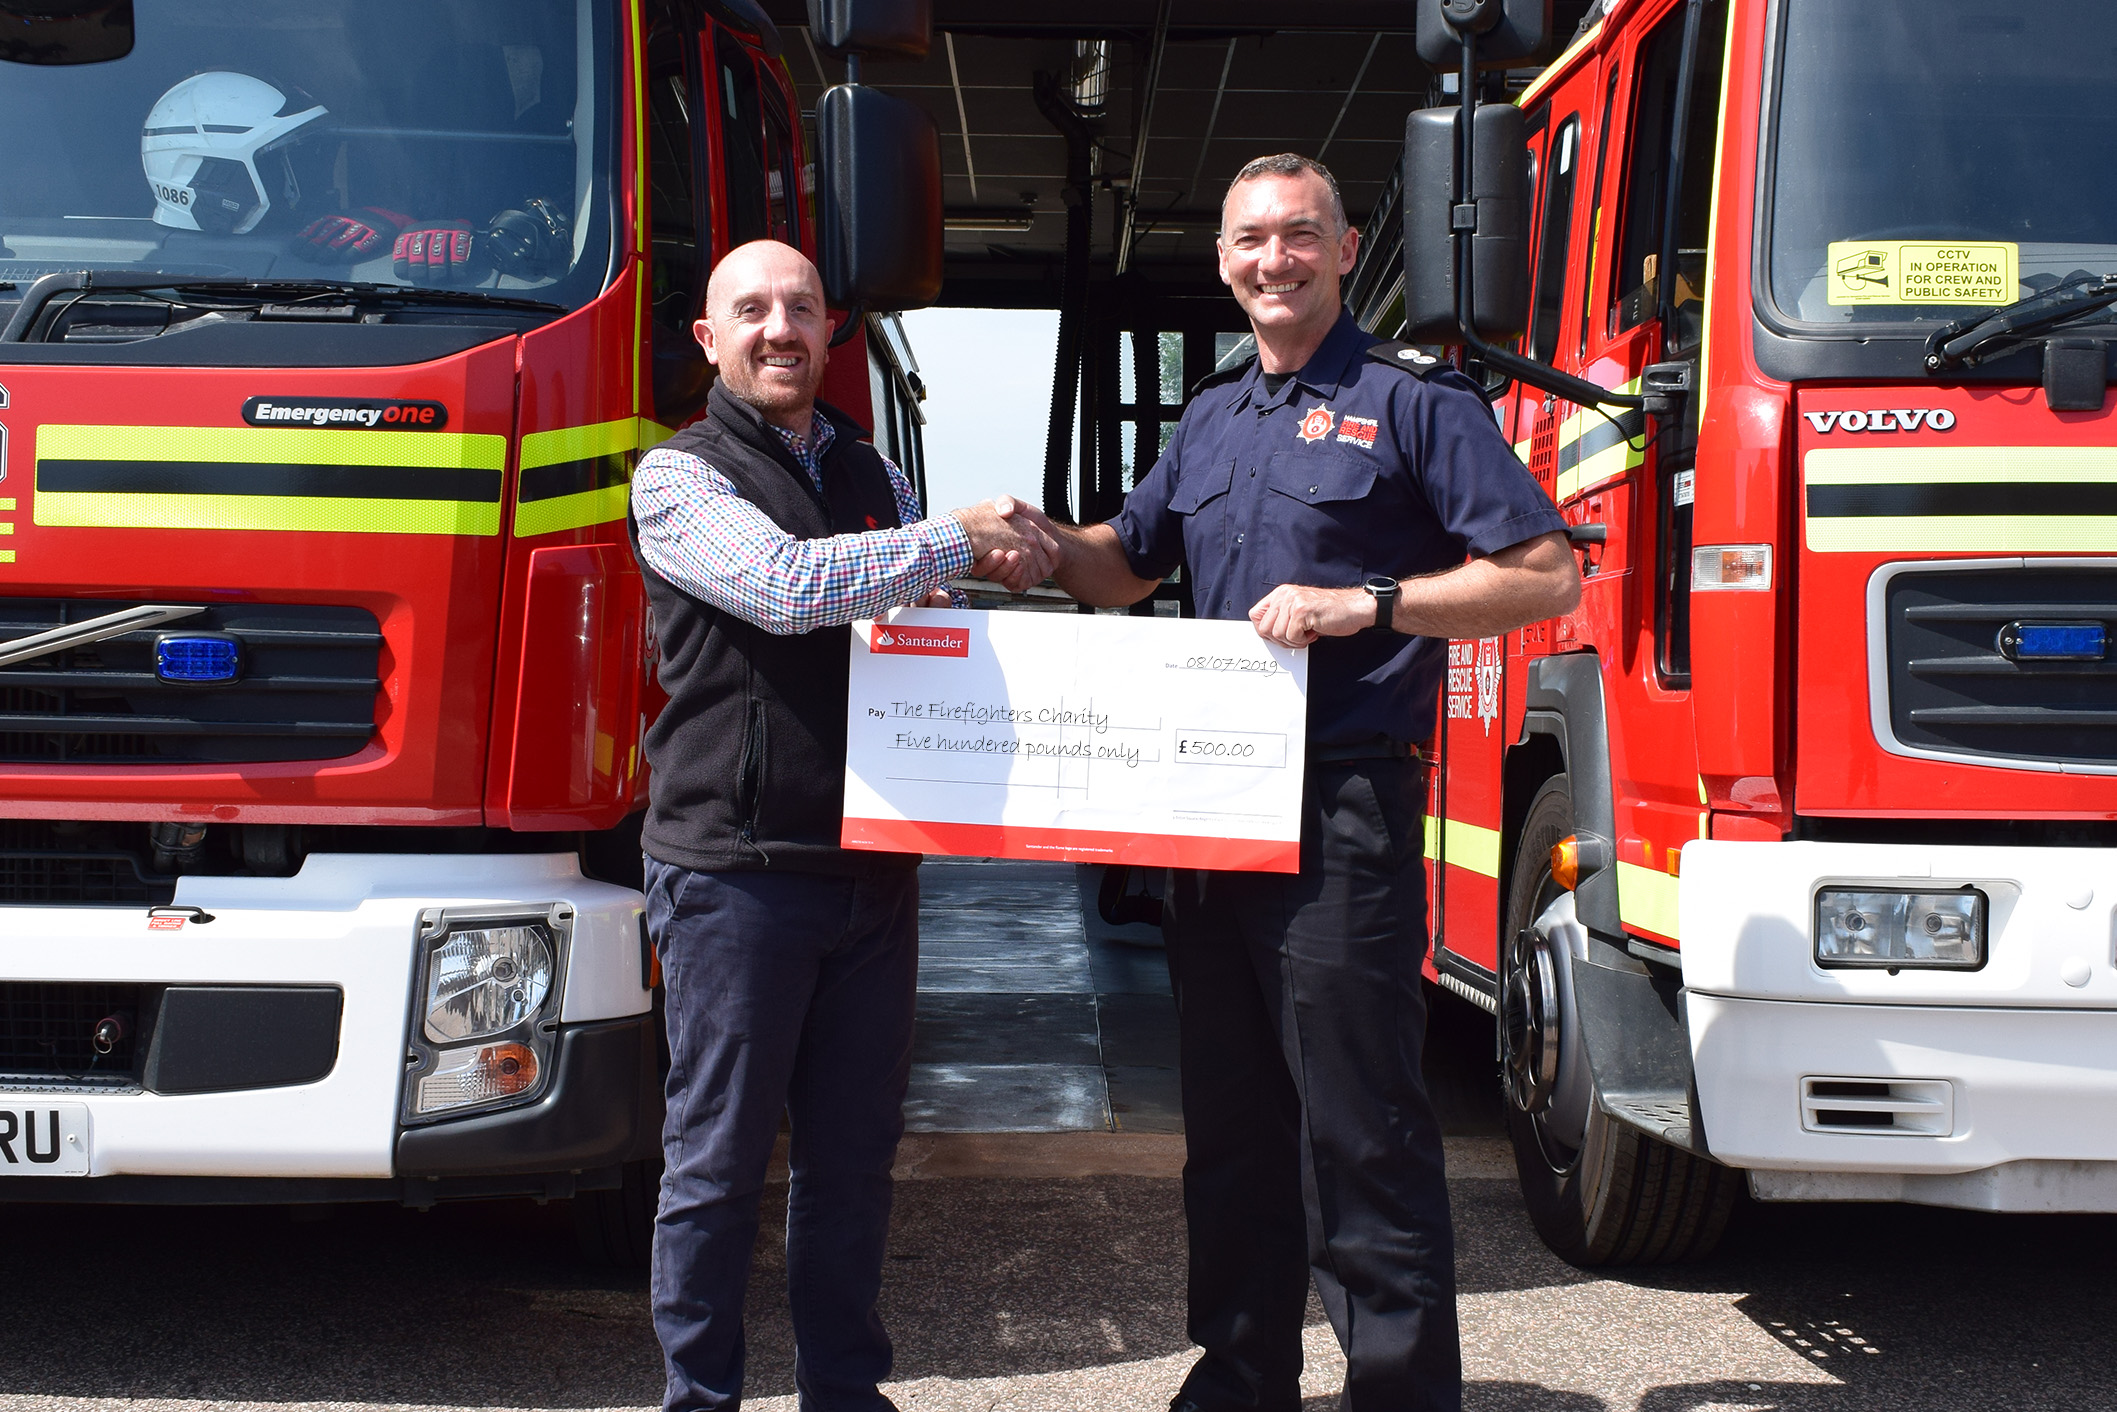 Coopers Fire Sponsor Hampshire Fire and Rescue